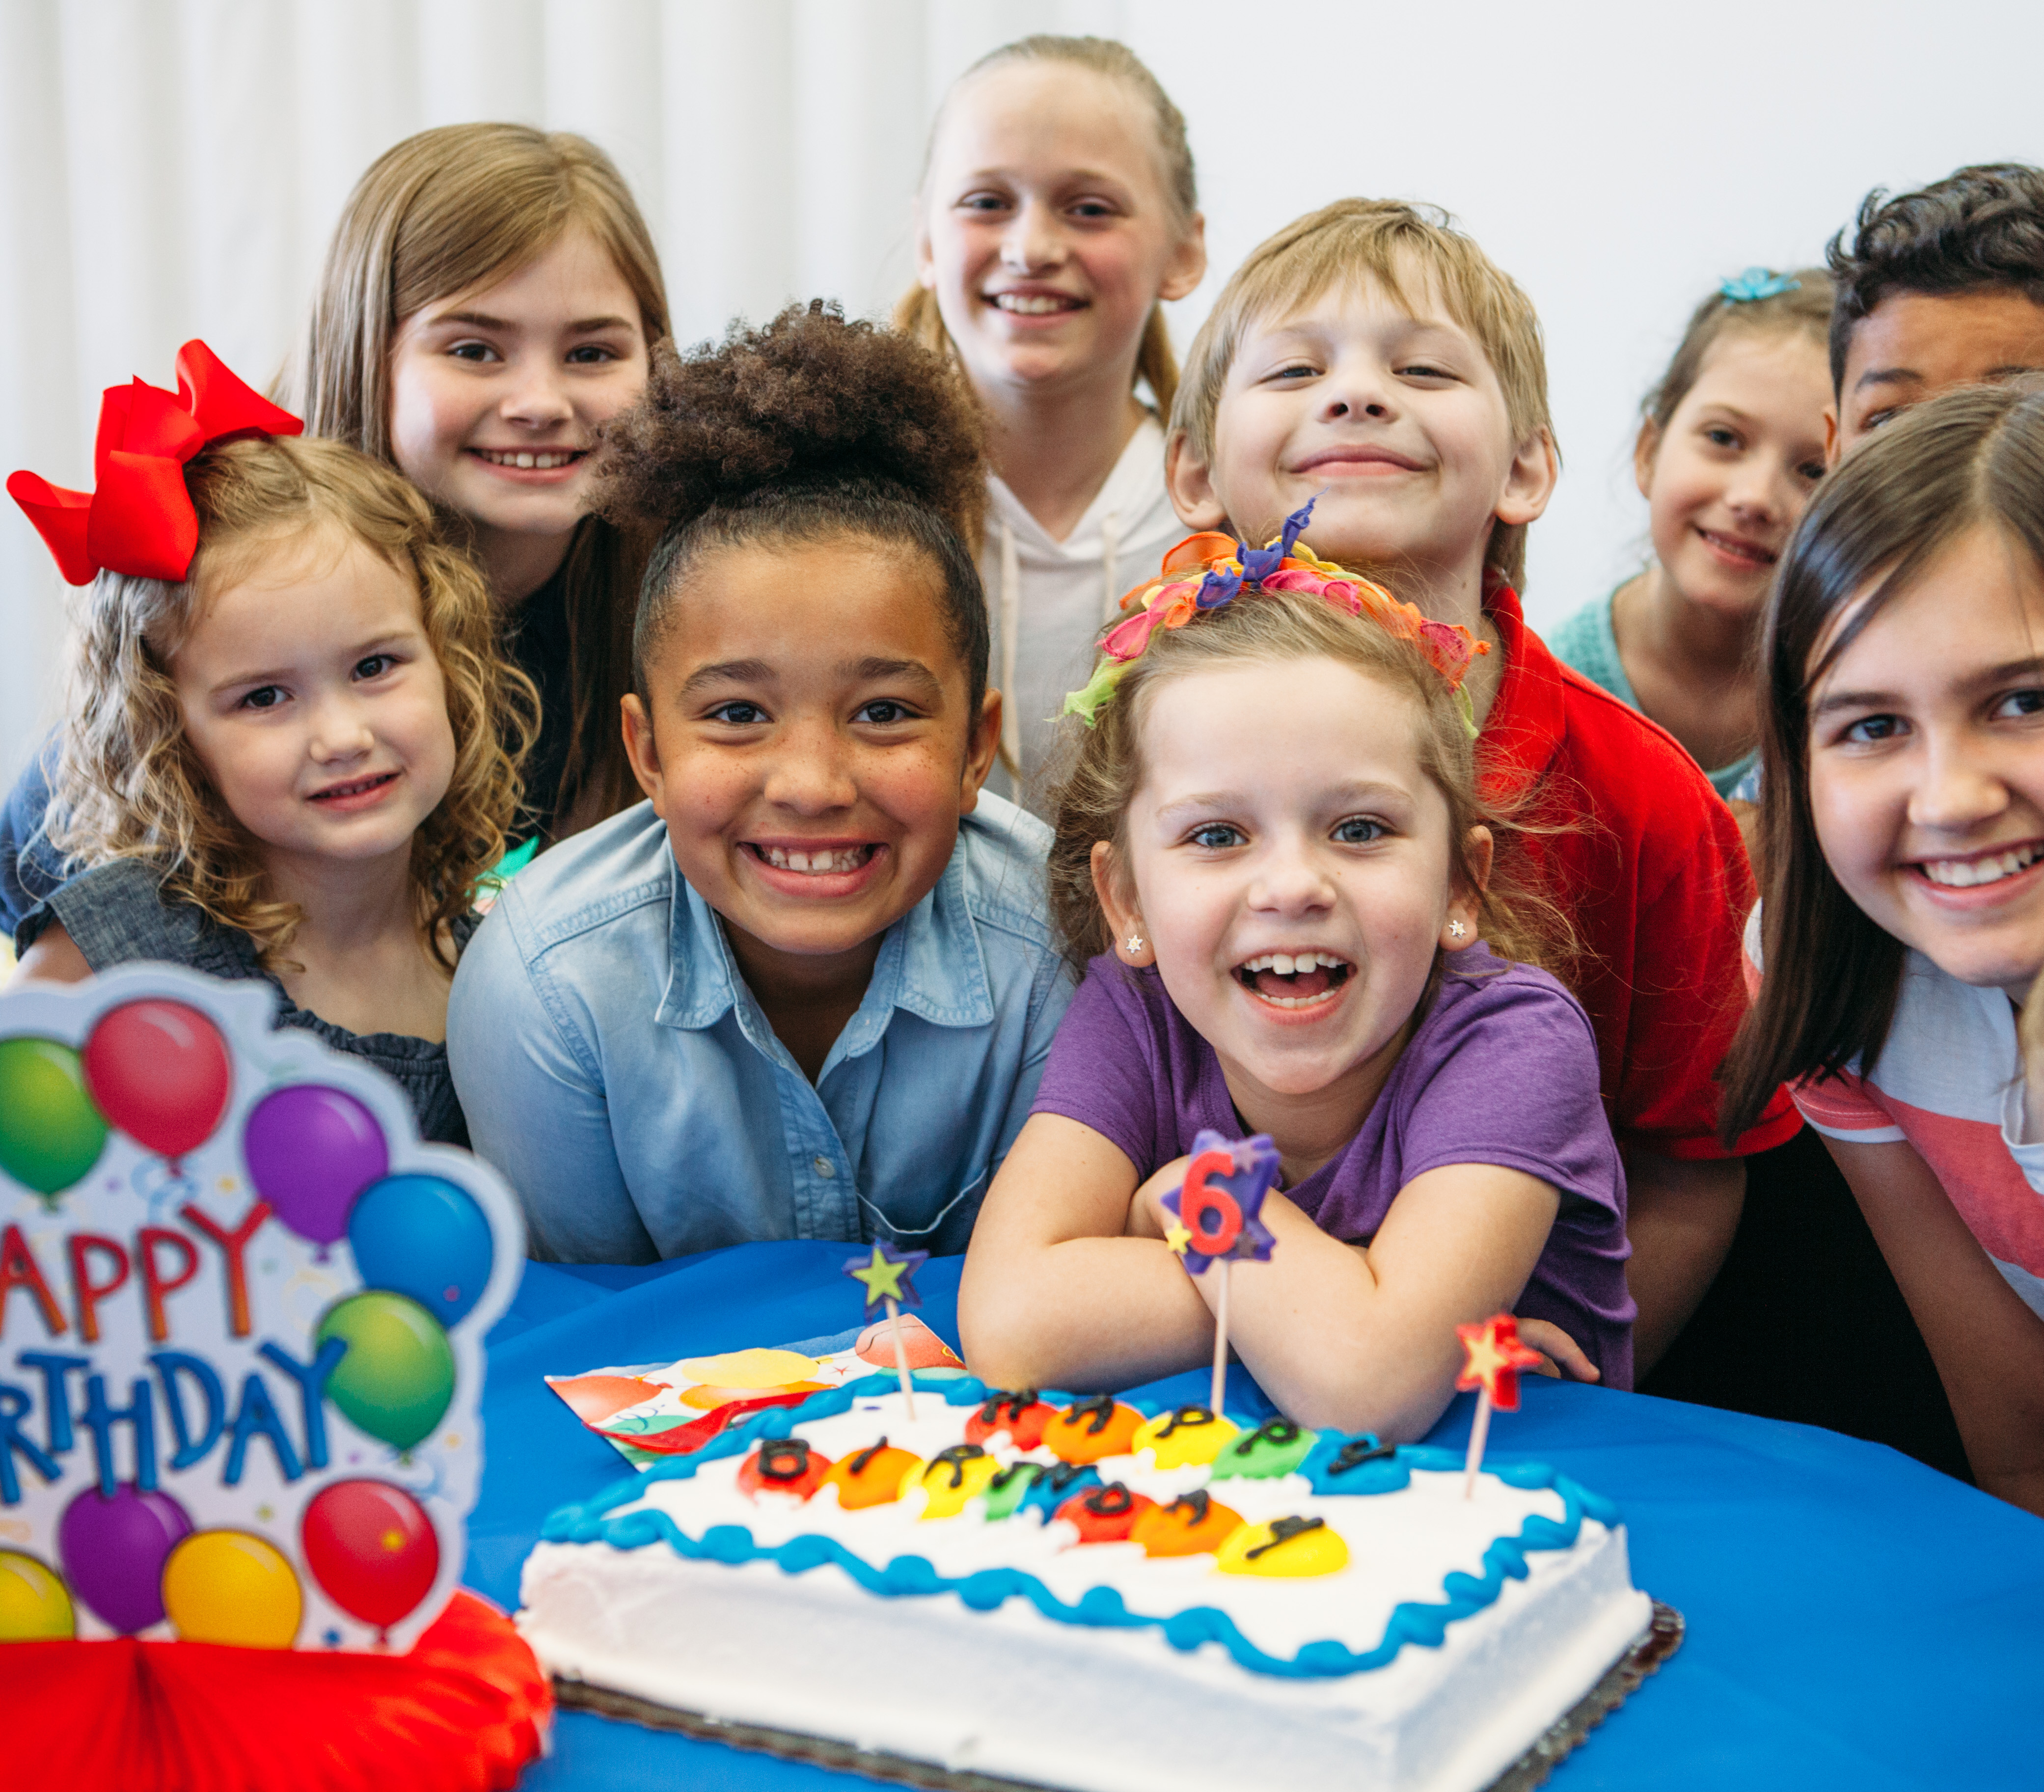 a birthday party incident Douglasville, ga - the charges stem from july confrontation that involved a convoy flying confederate flags and attendees at a child's birthday party.